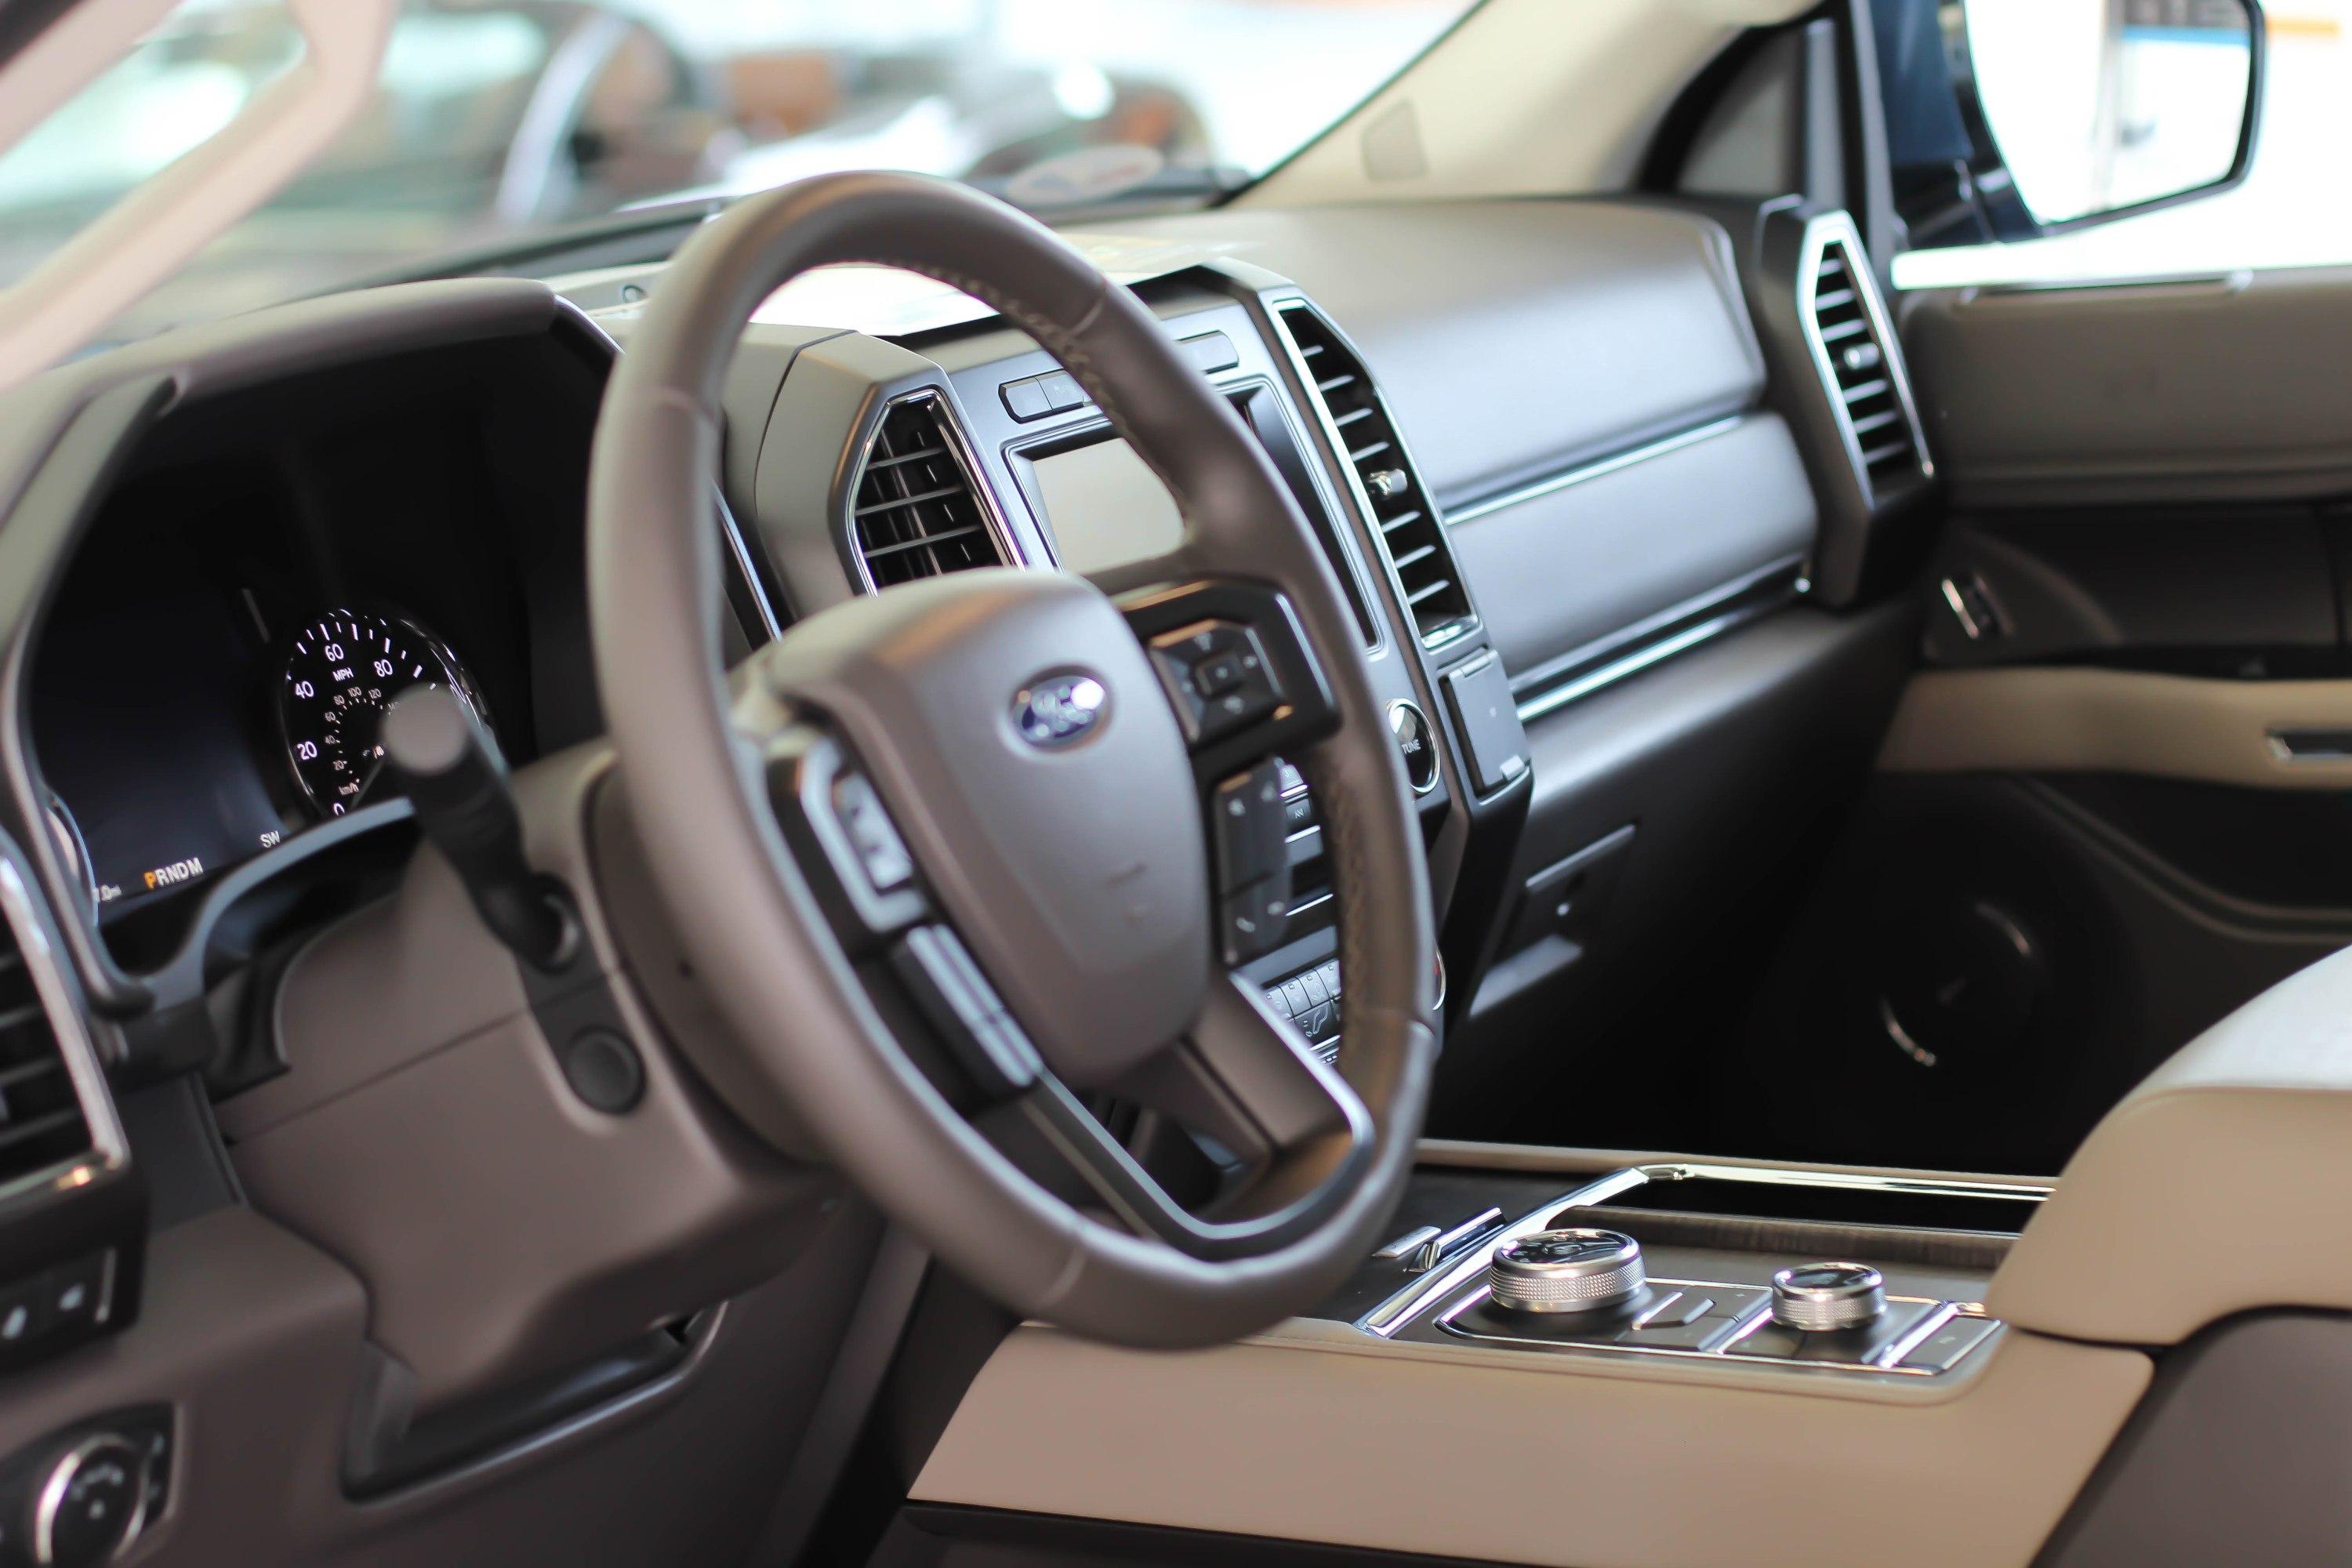 With Pleasing Interior Ergonomics Aesthetics The  Ford Expedition Is Designed For The Everyday Gentlemen That Appreciates Utilitarian Luxury